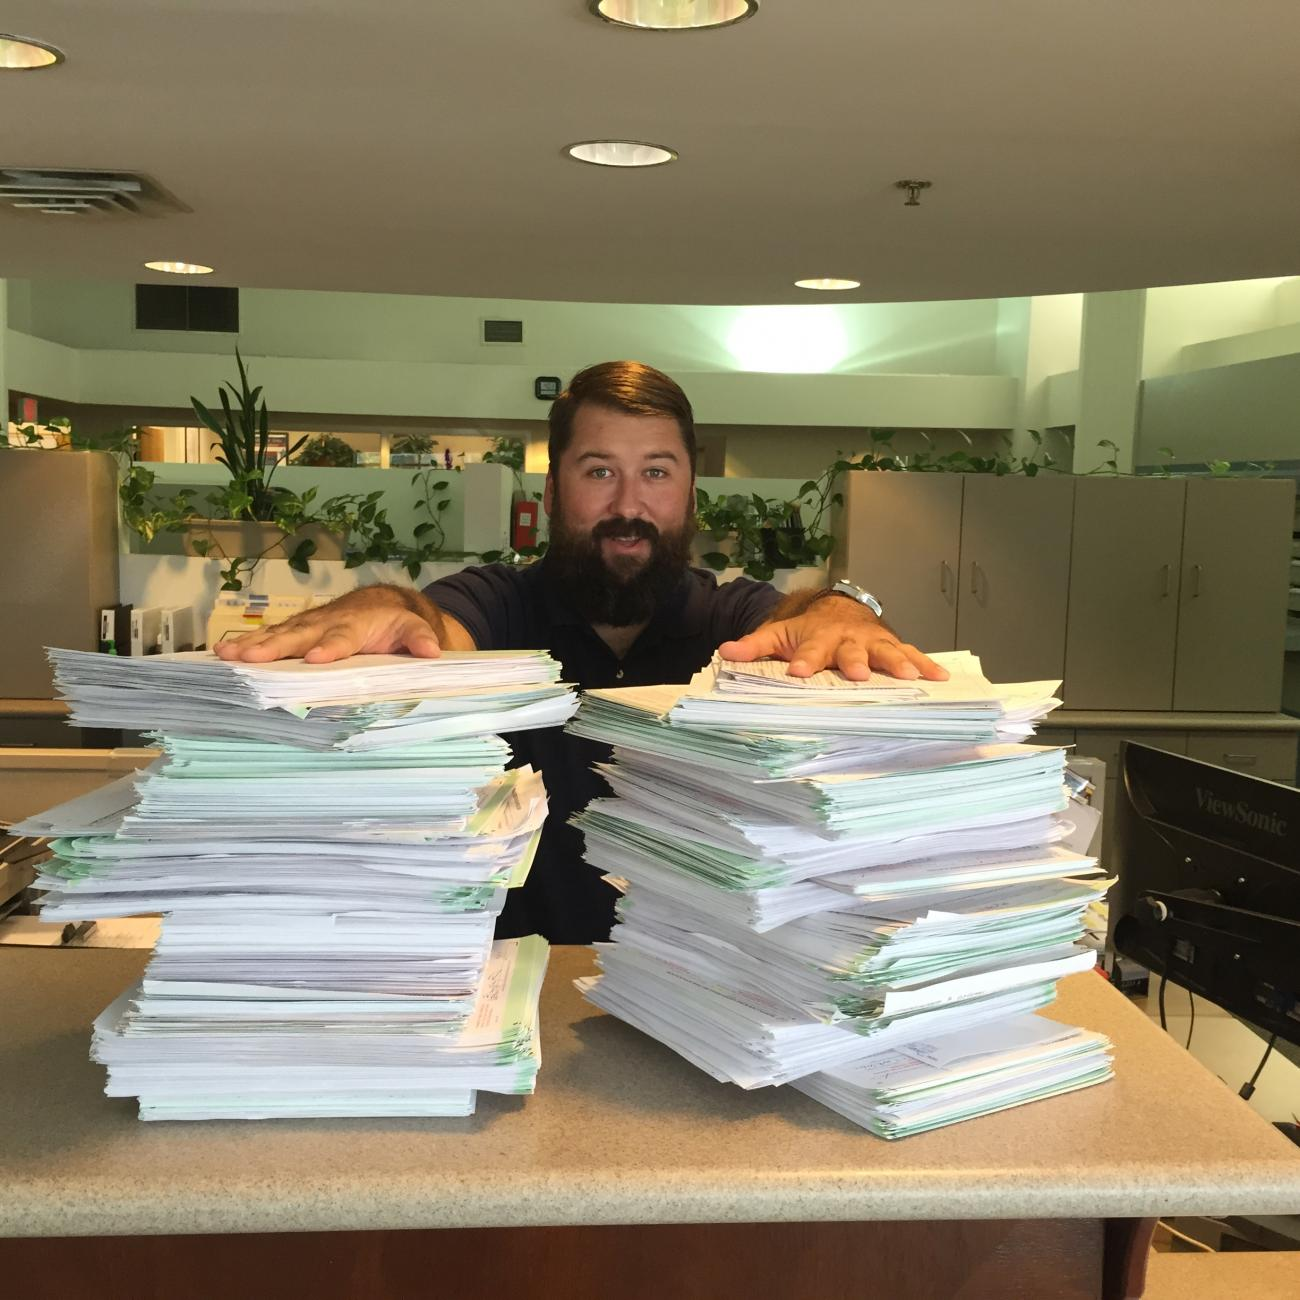 Male election worker with stacks of voter registration forms